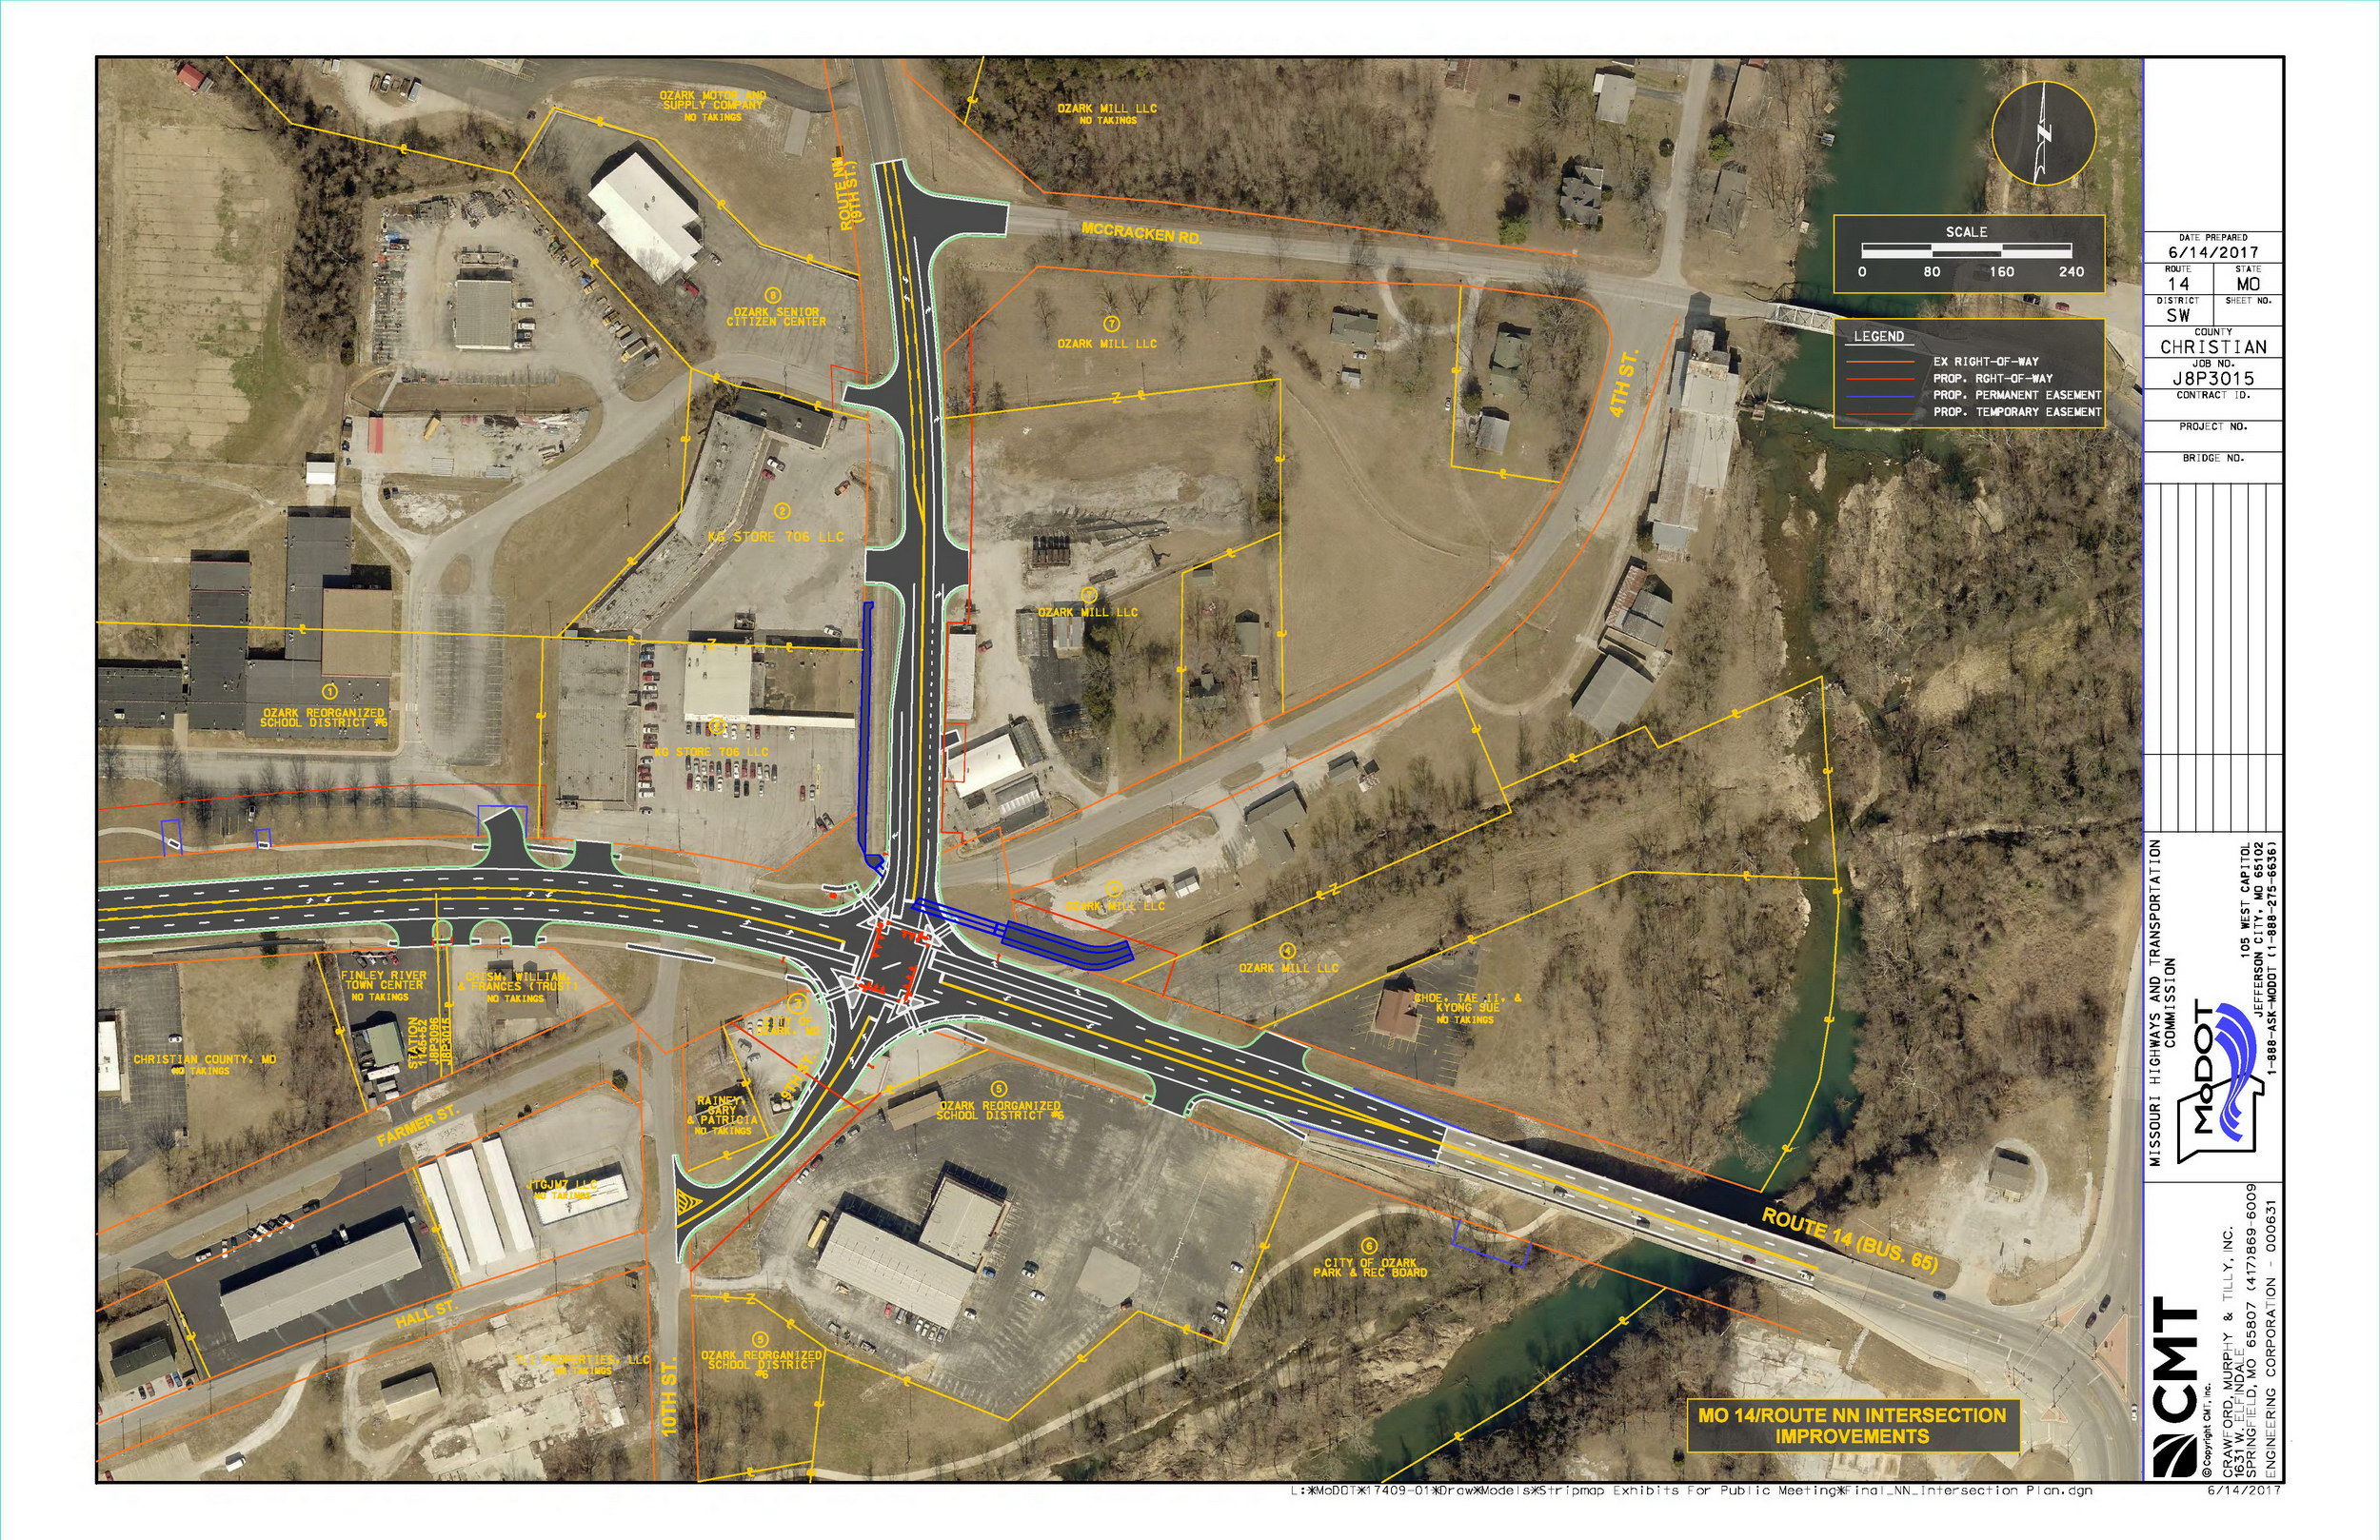 Missouri Highway Department Modot Plans To Widen Route